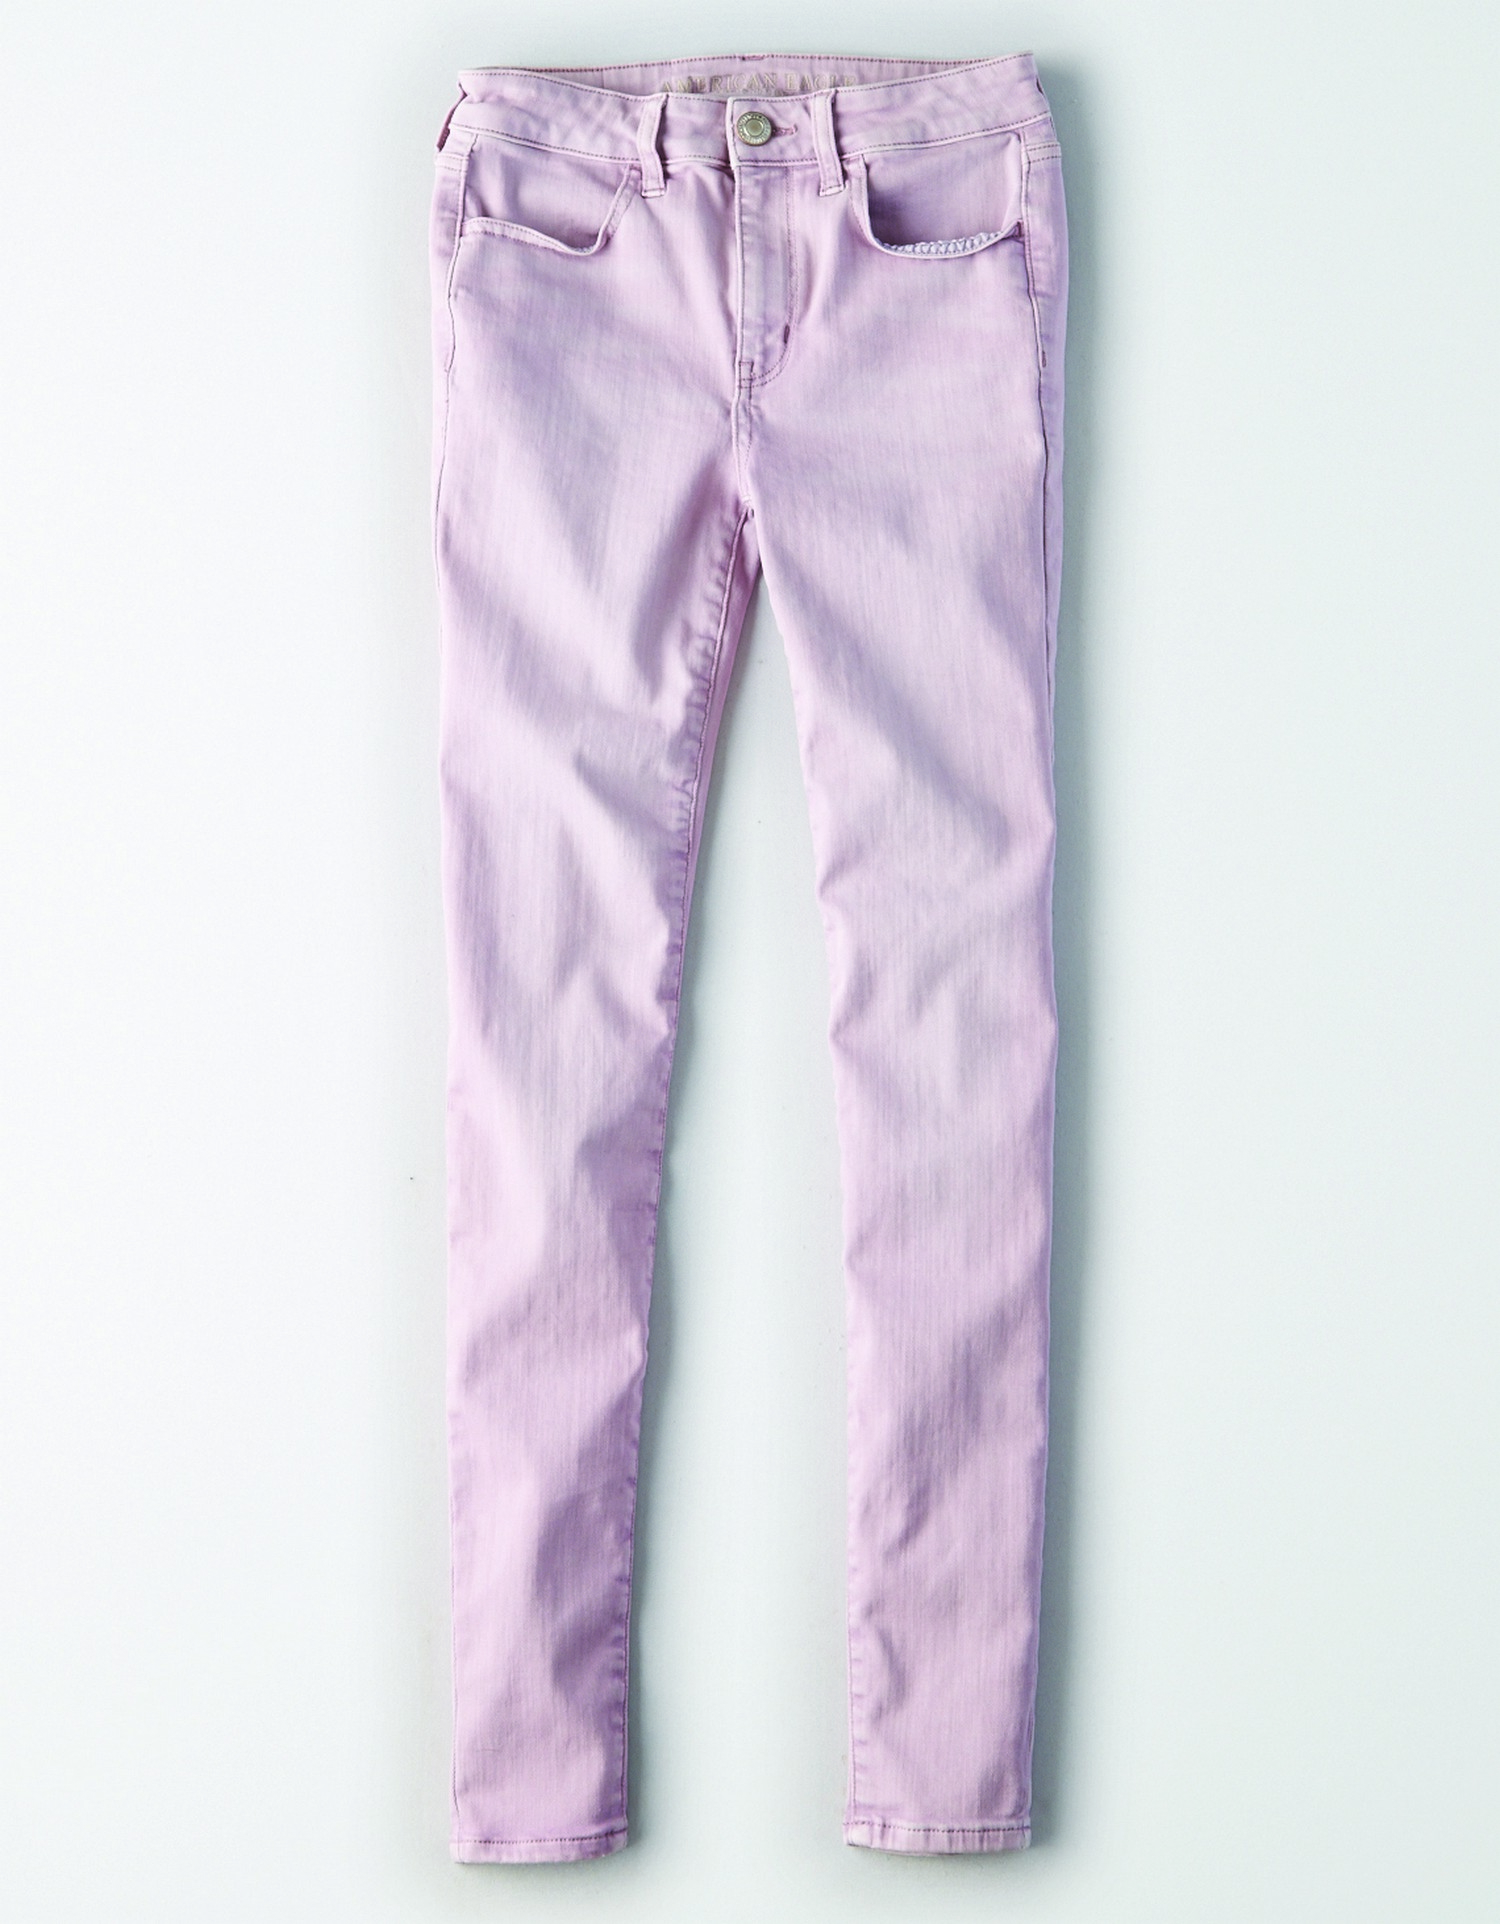 AE - W - Apparel - DENIM X HI-RISE JEGGING - Lavender Pink - No Destroy - Silver Button - Zipper Fly - No Rivets - Black Jacron in DC 12/31 *Tracked